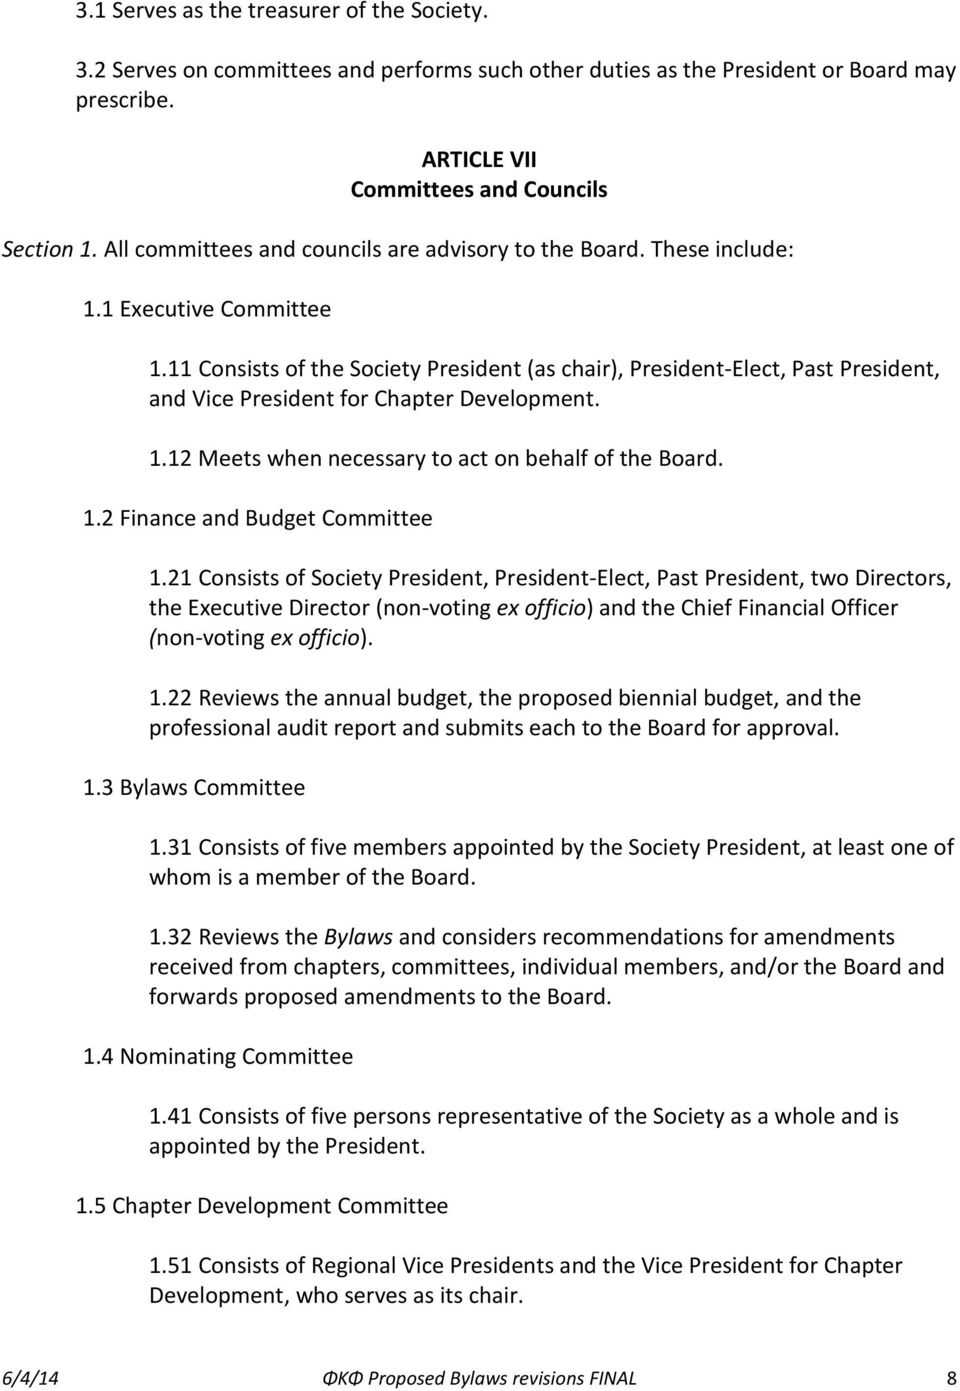 11 Consists of the Society President (as chair), President-Elect, Past President, and Vice President for Chapter Development. 1.12 Meets when necessary to act on behalf of the Board. 1.2 Finance and Budget Committee 1.